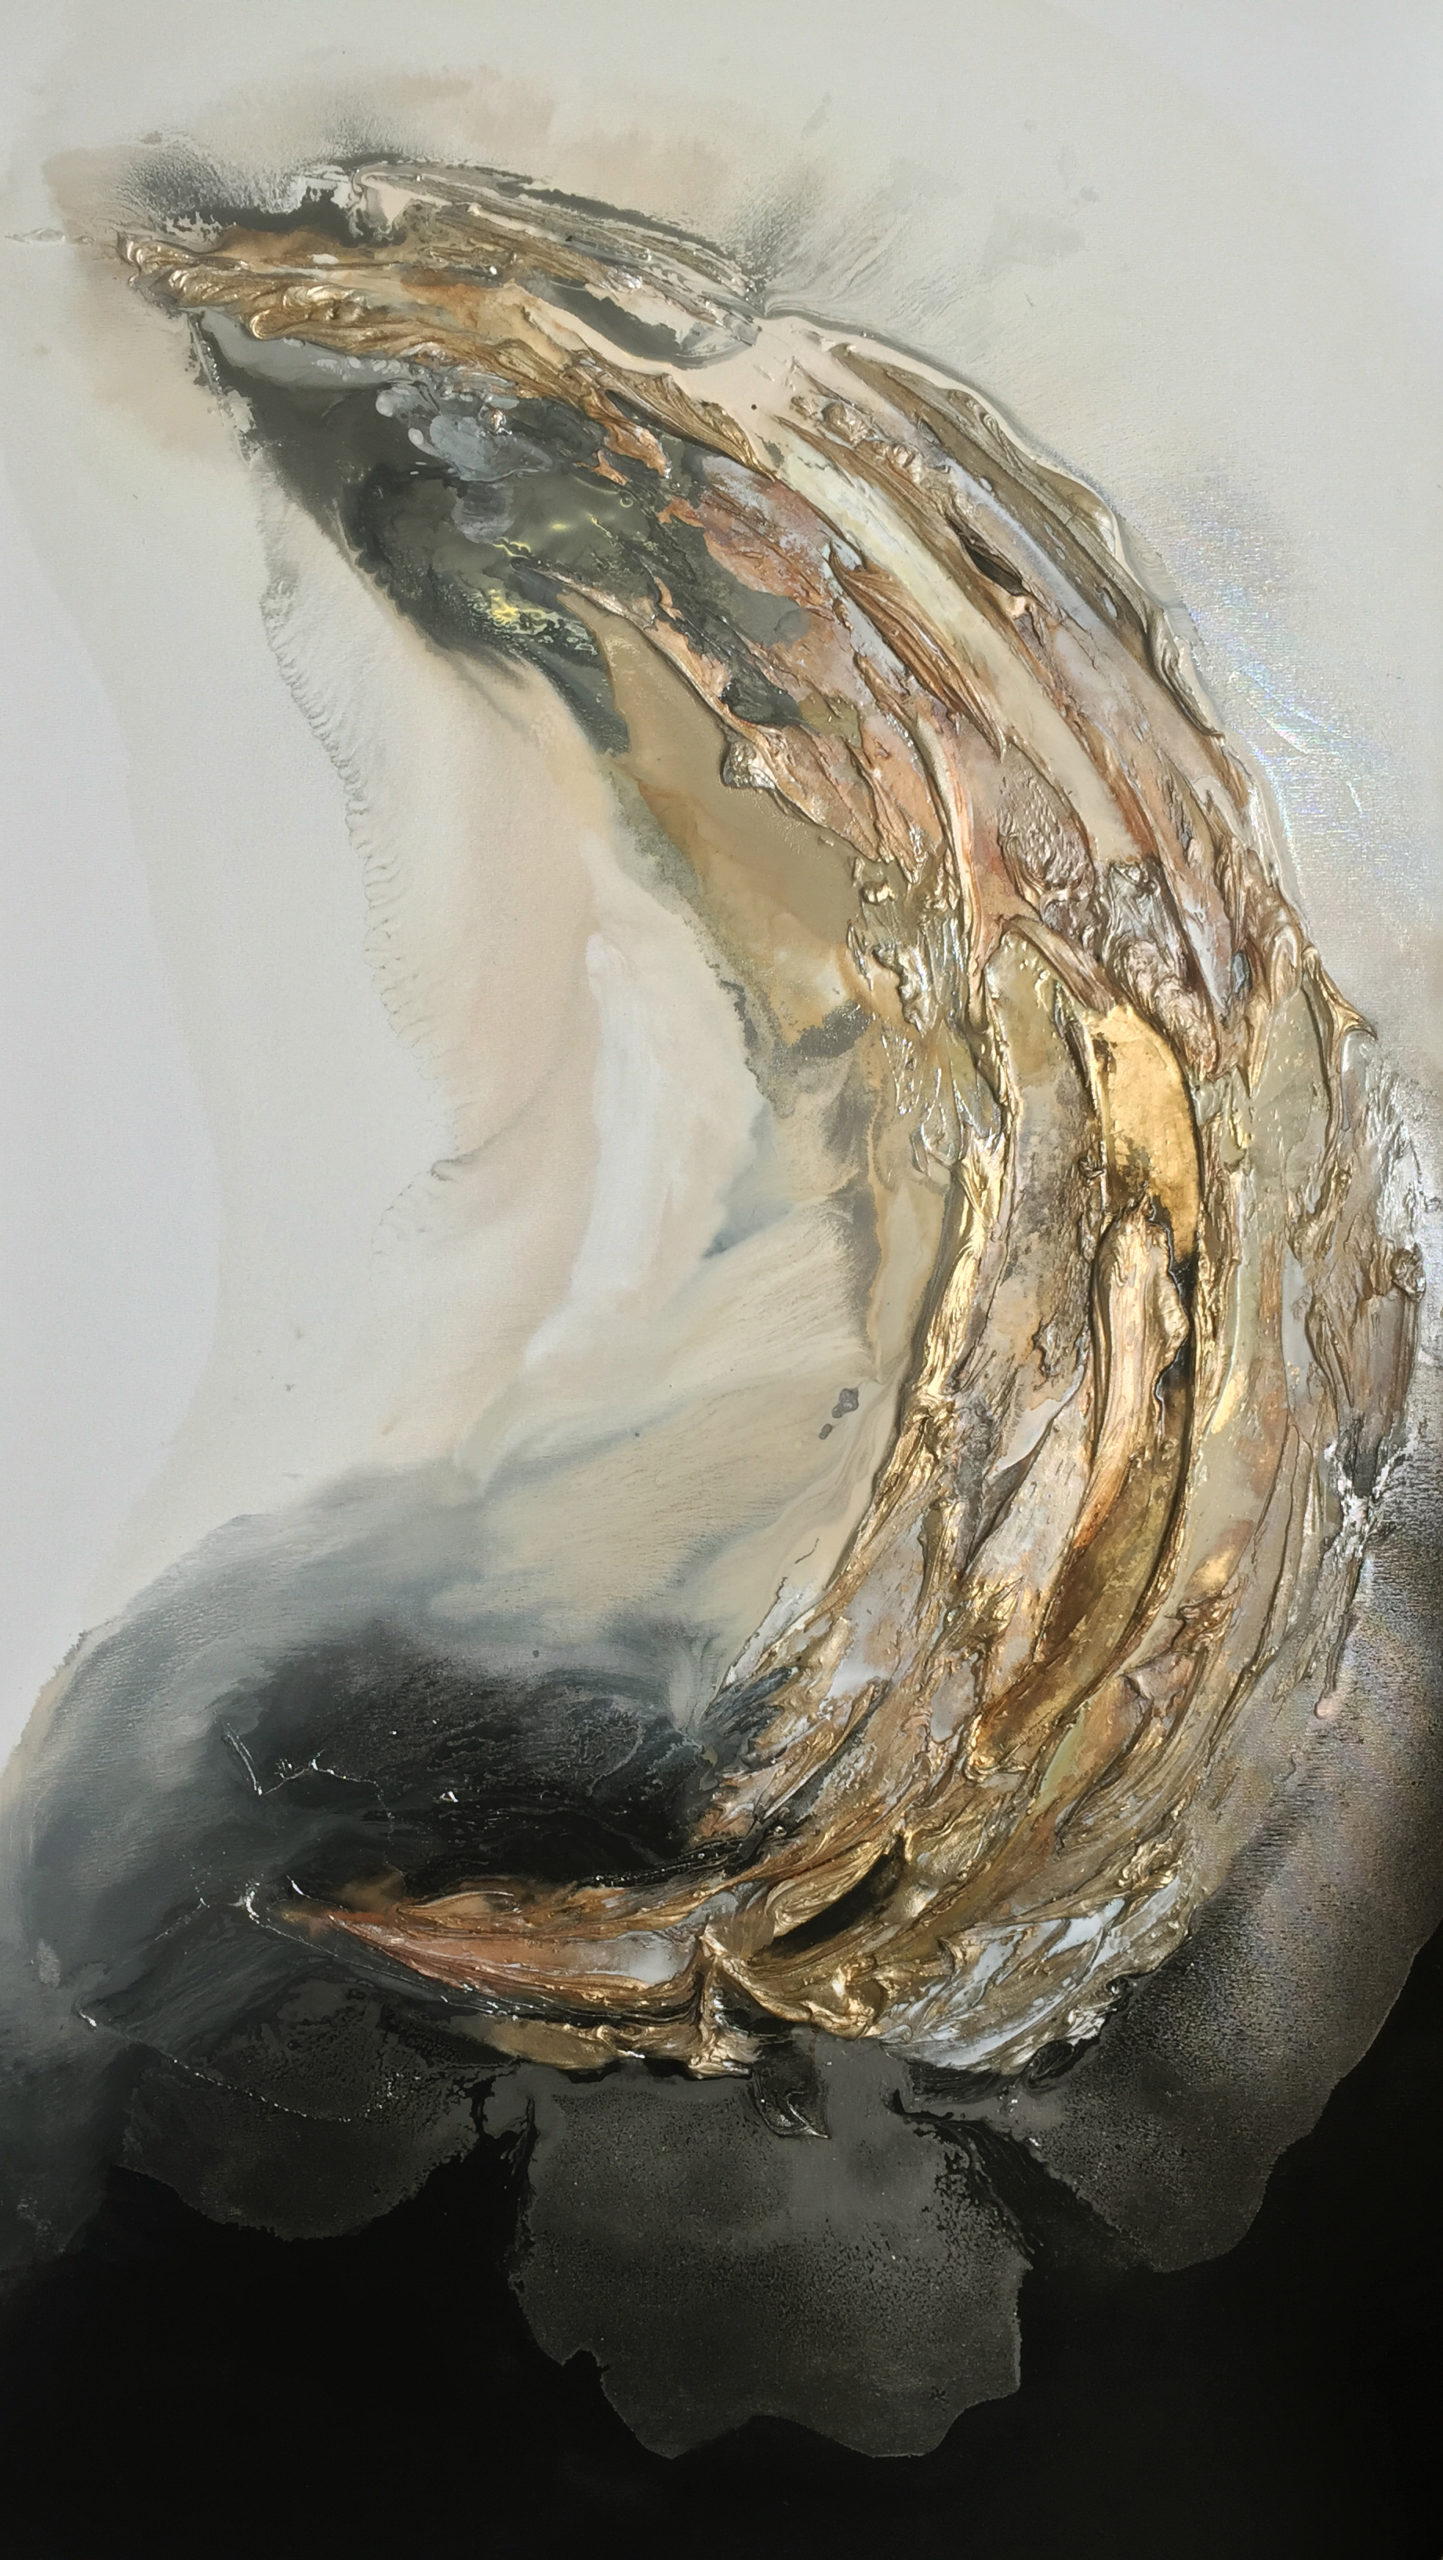 Vicky Sanders Oyster Series - Gold Oyster